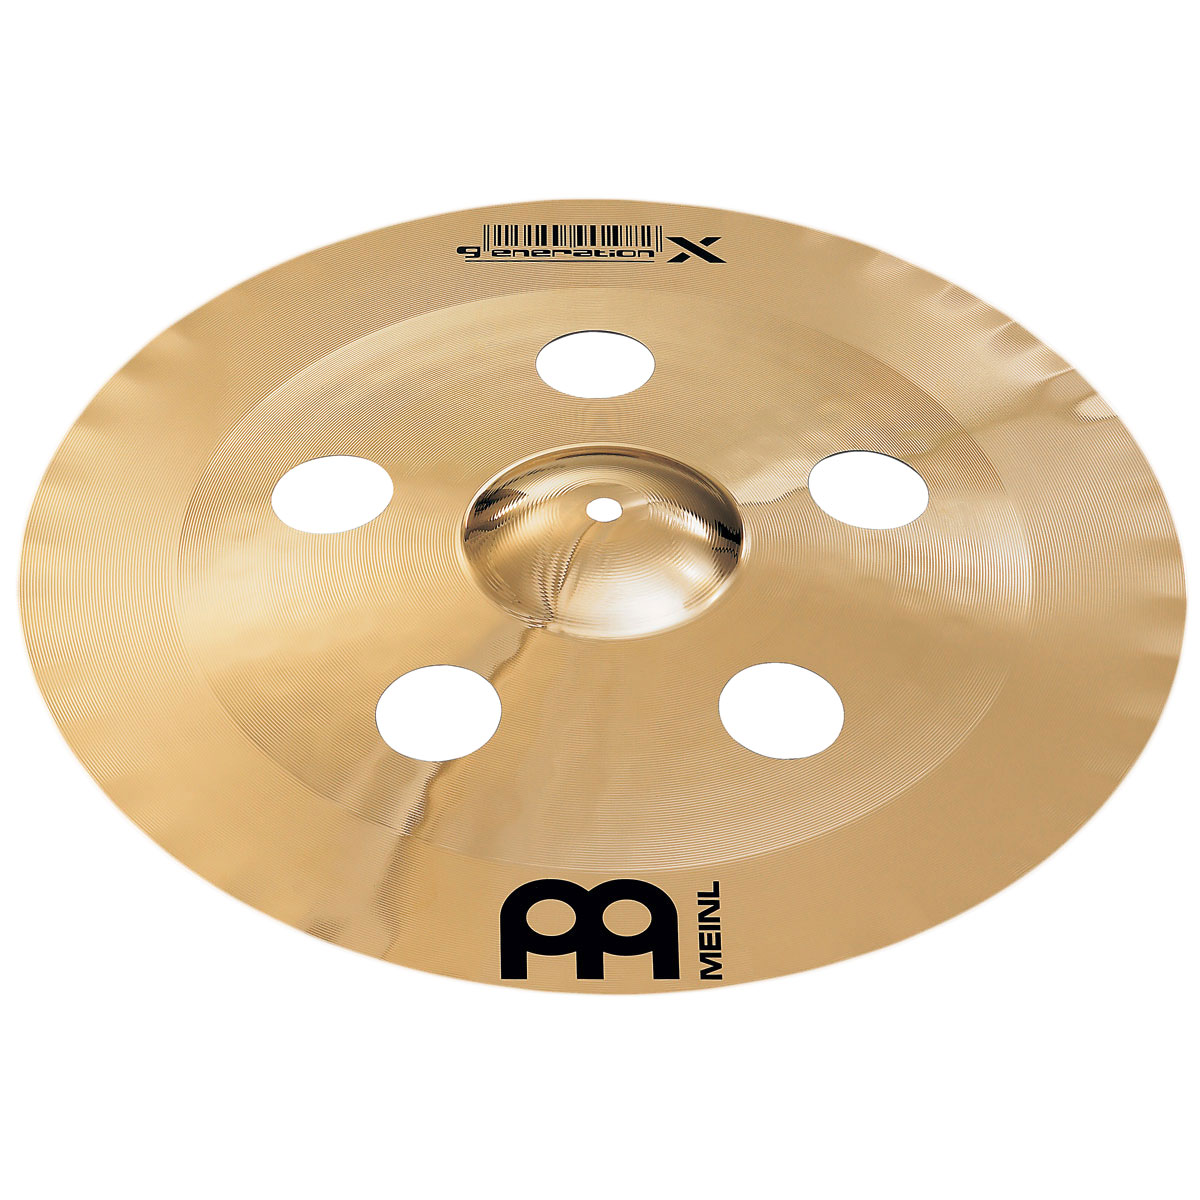 "Meinl 15"" Generation X China/Crash Cymbal"